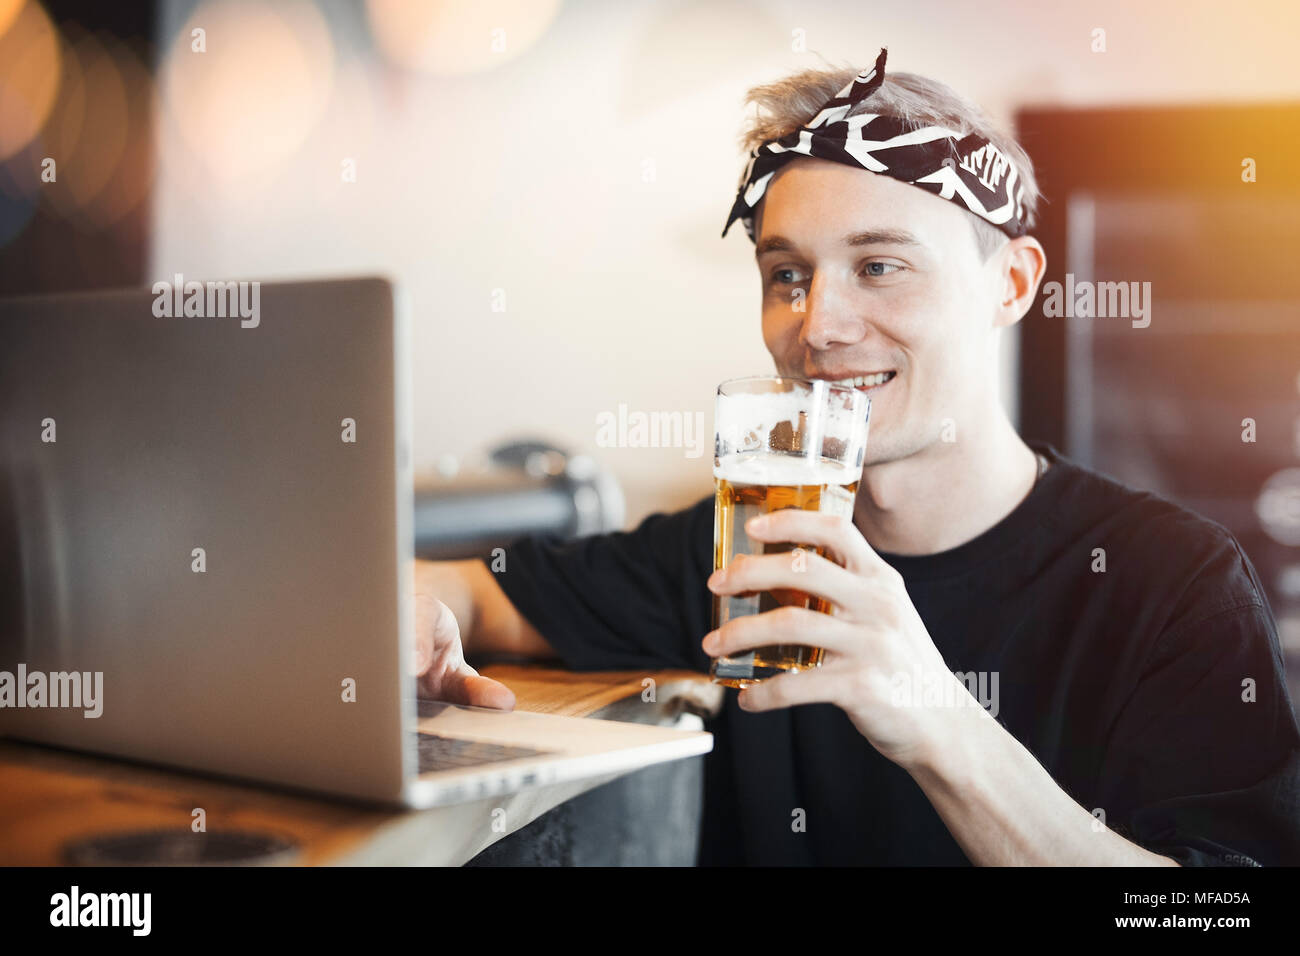 Young smiling man holding glass of beer and working on laptop. - Stock Image